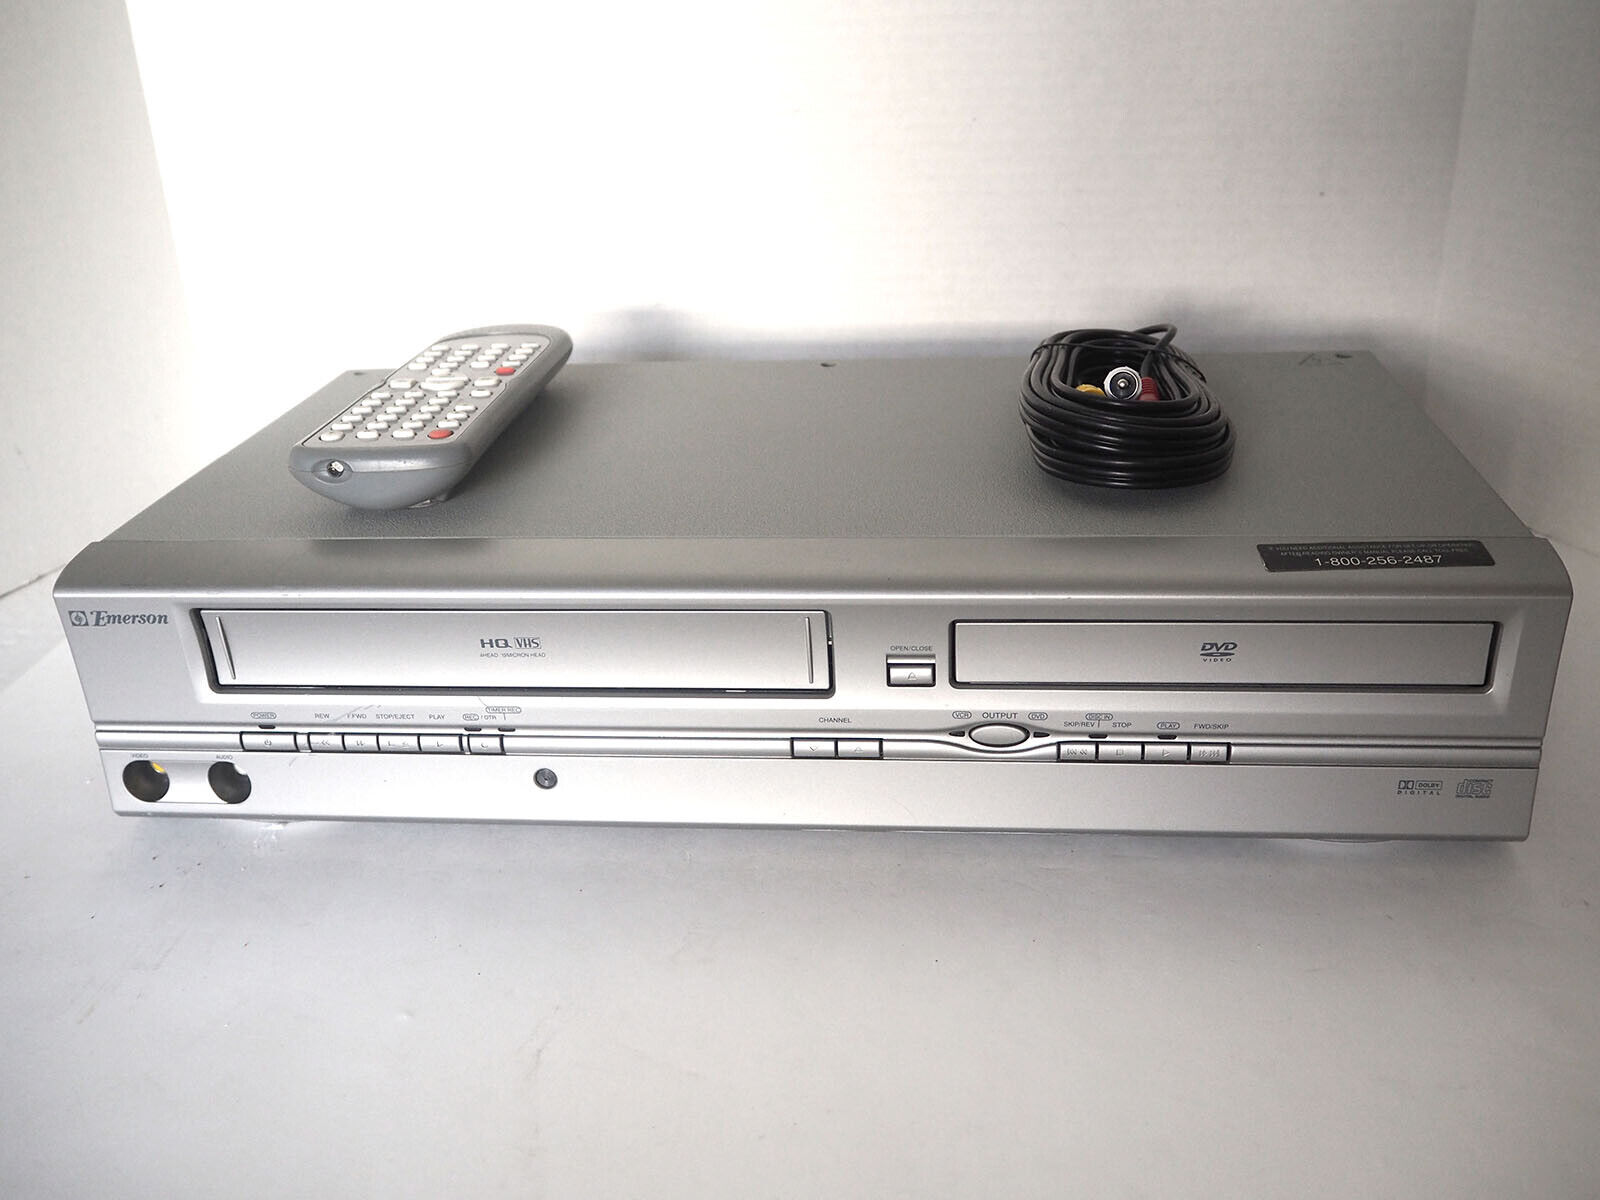 Emerson EWD2004 DVD VCR Combo Player VHS Recorder With Remote - $68.99